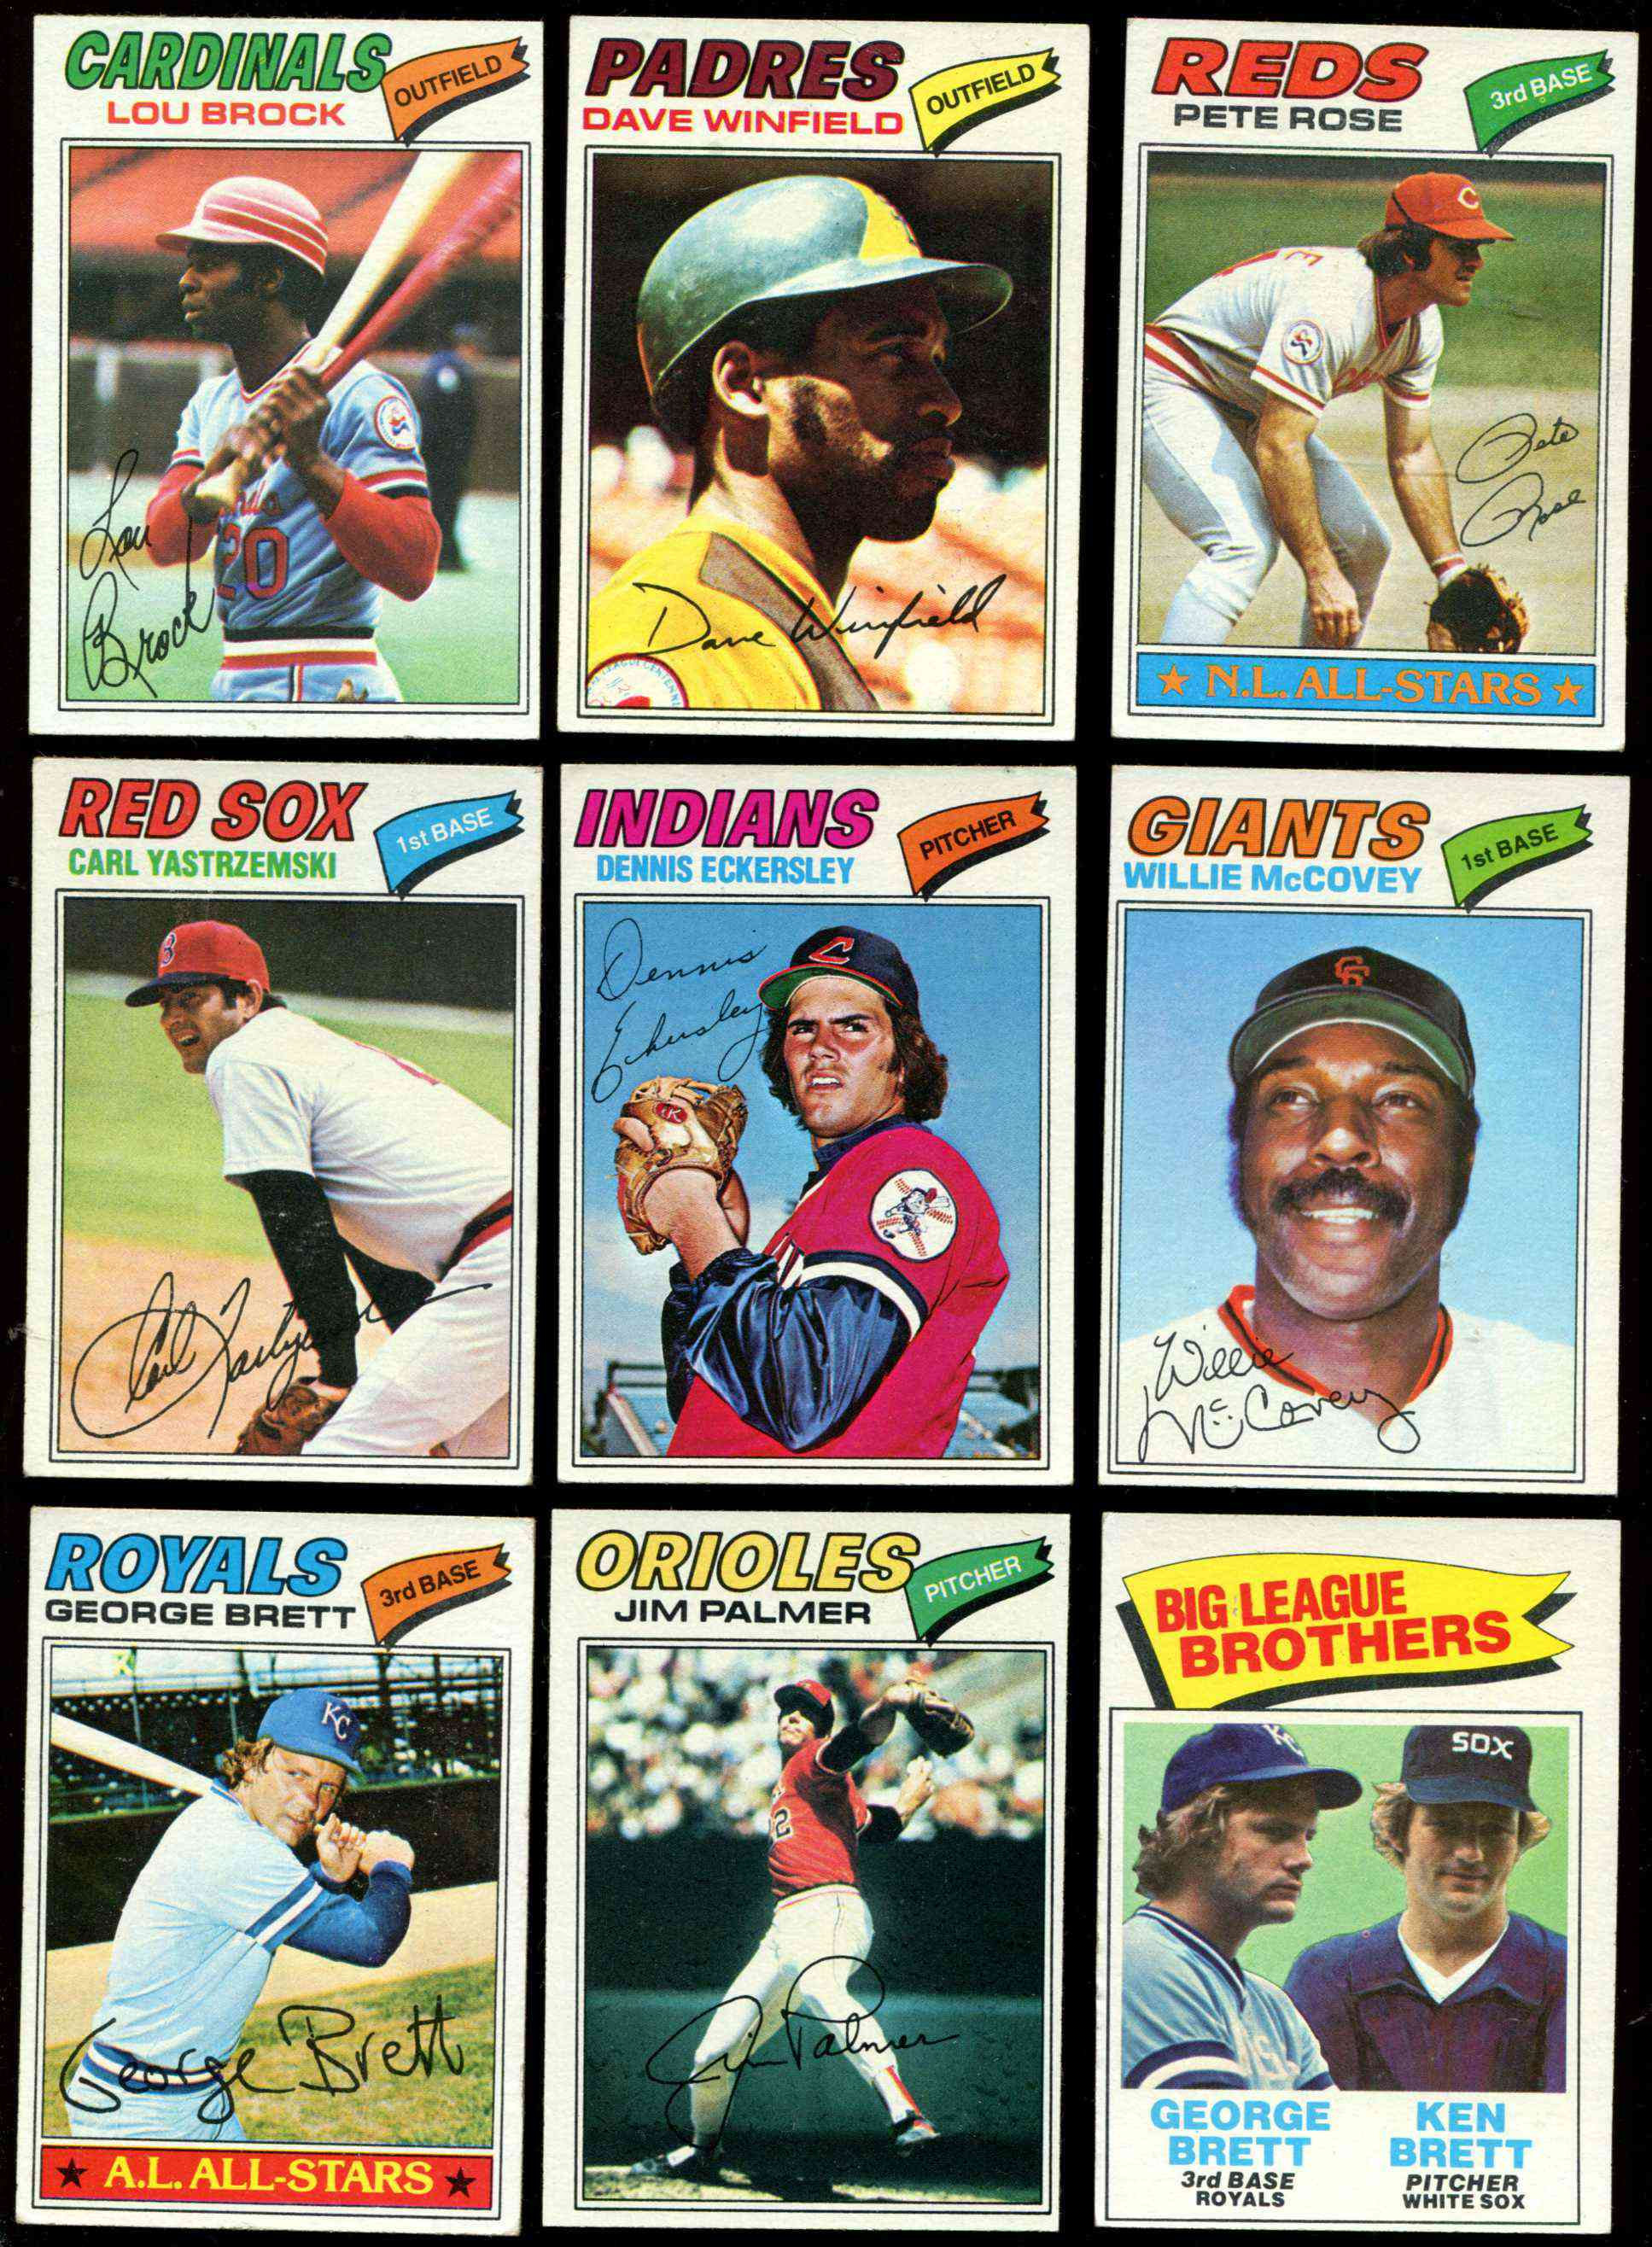 1977 Topps Baseball Cards Set Checklist Prices Values